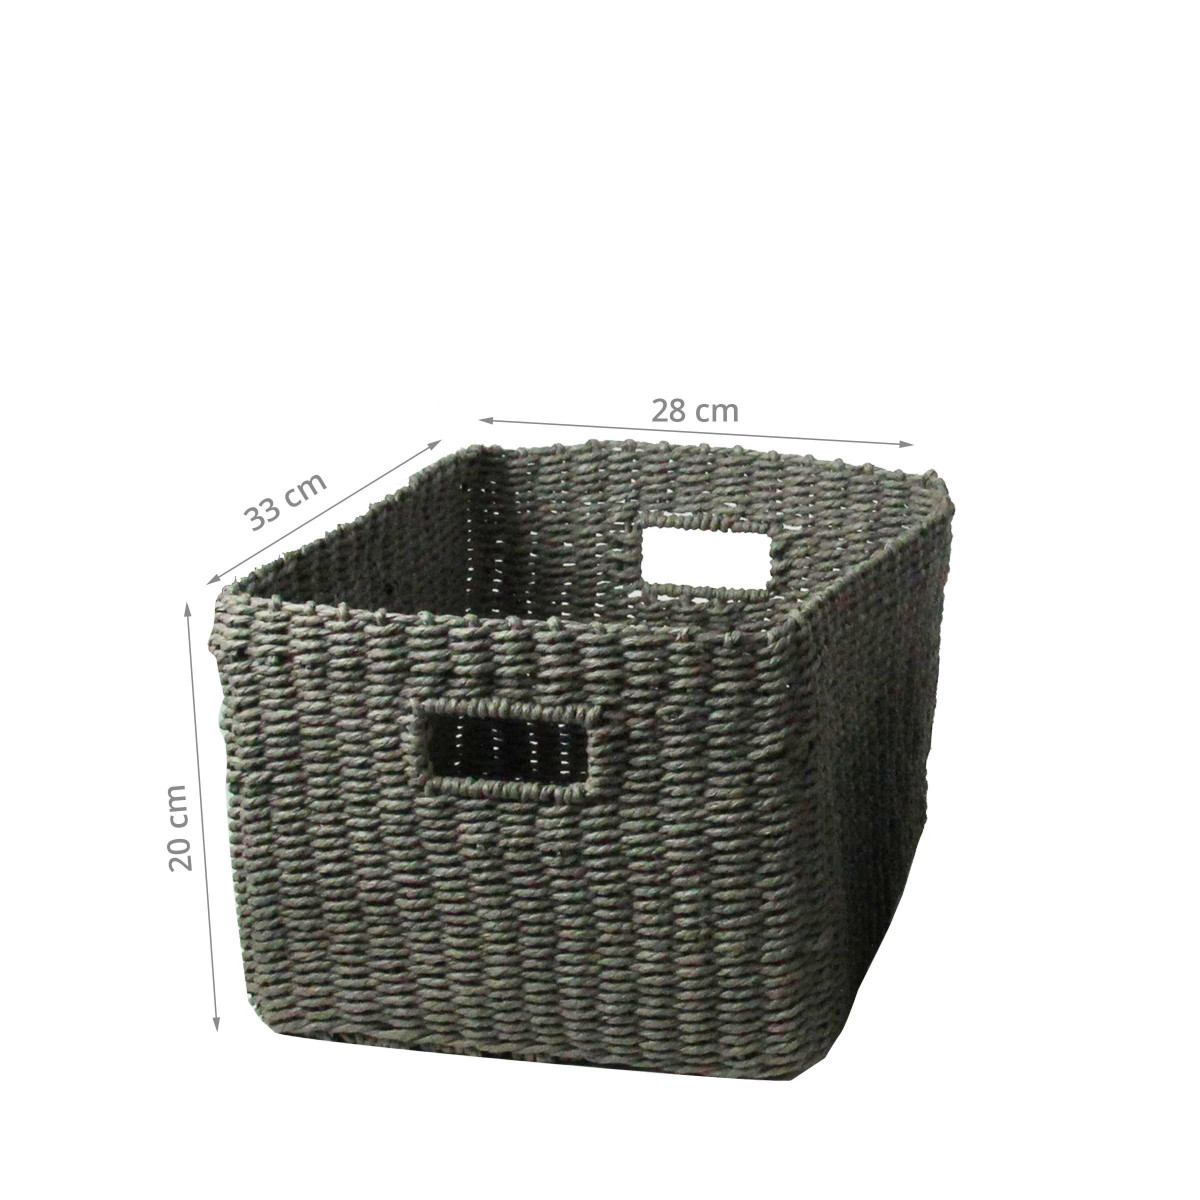 panier de rangement gris rectangulaire. Black Bedroom Furniture Sets. Home Design Ideas